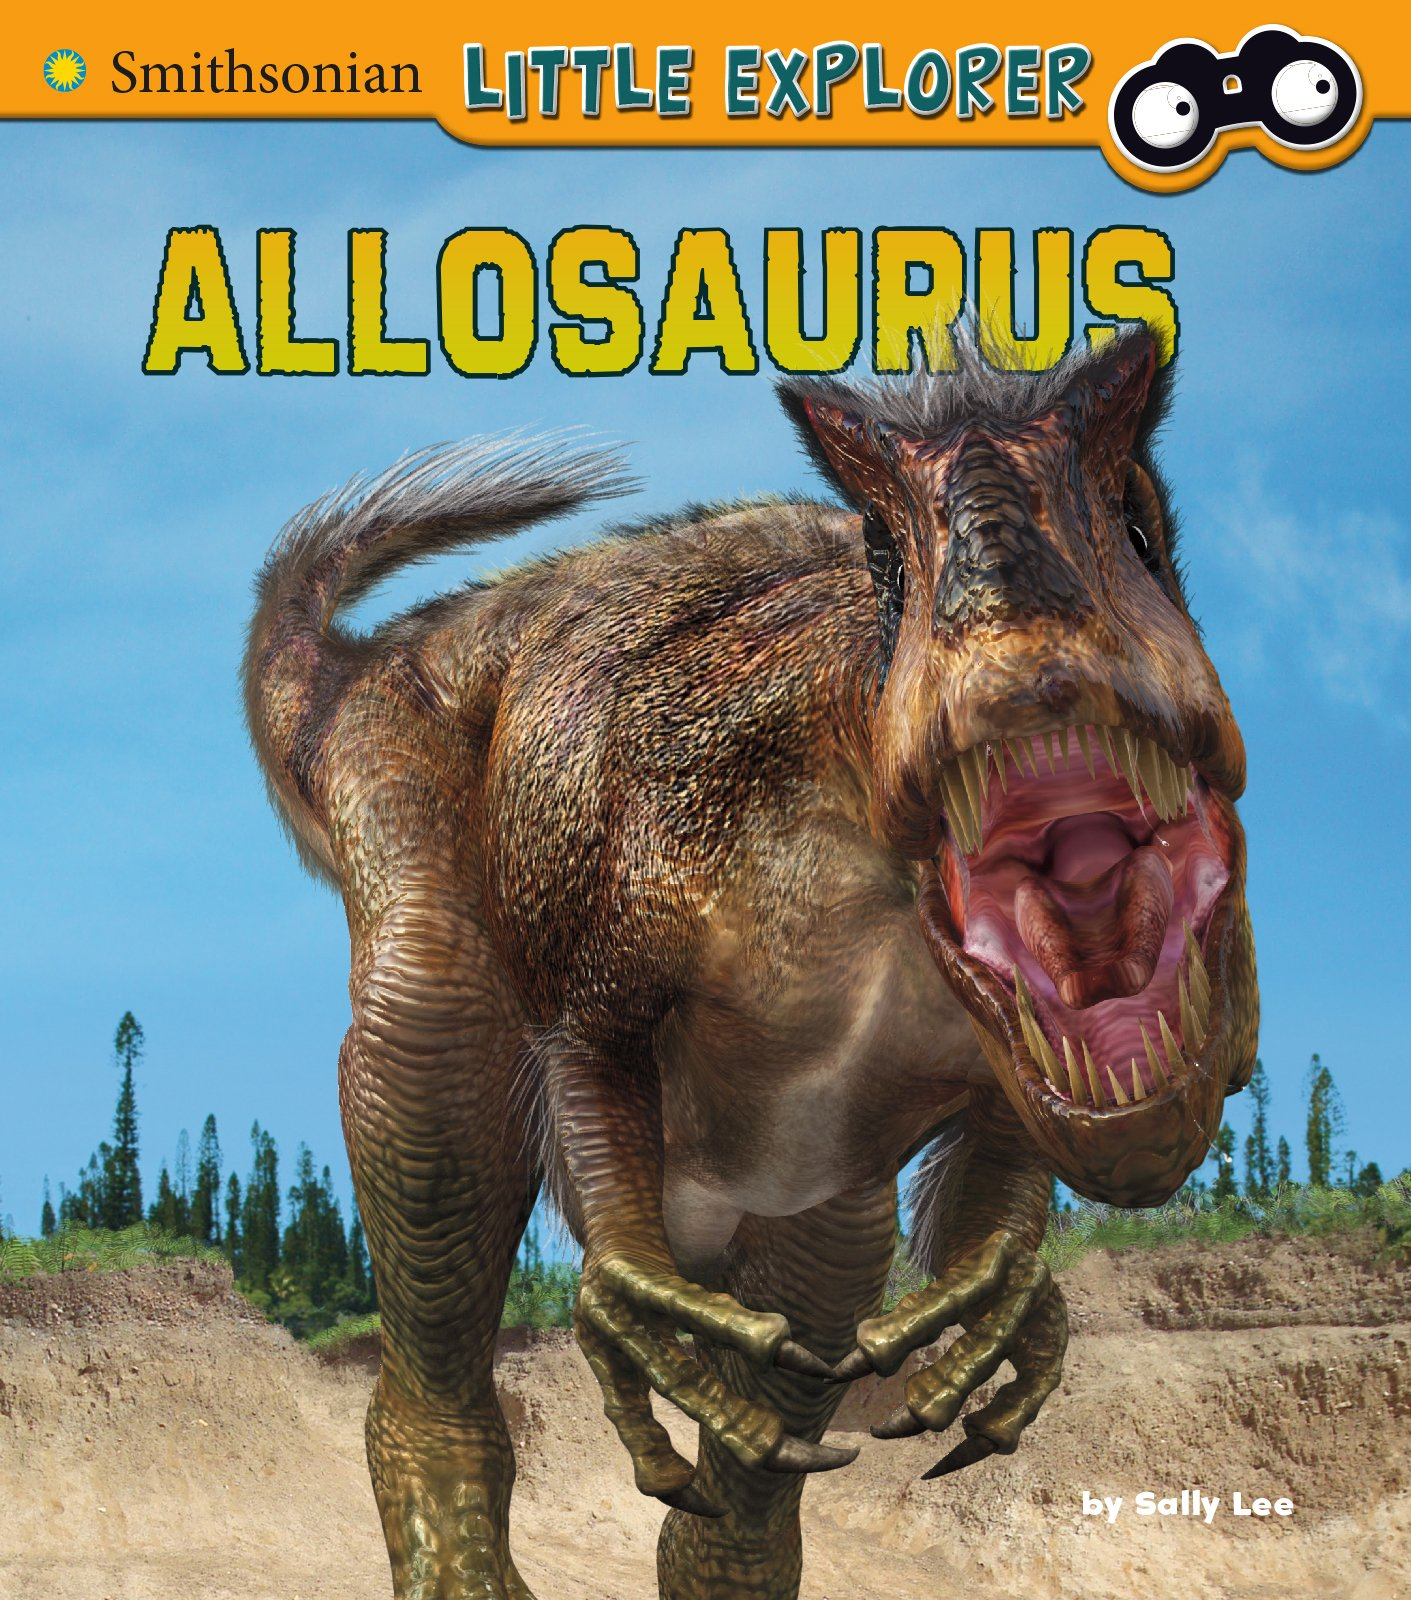 Image result for allosaurus book by sally lee